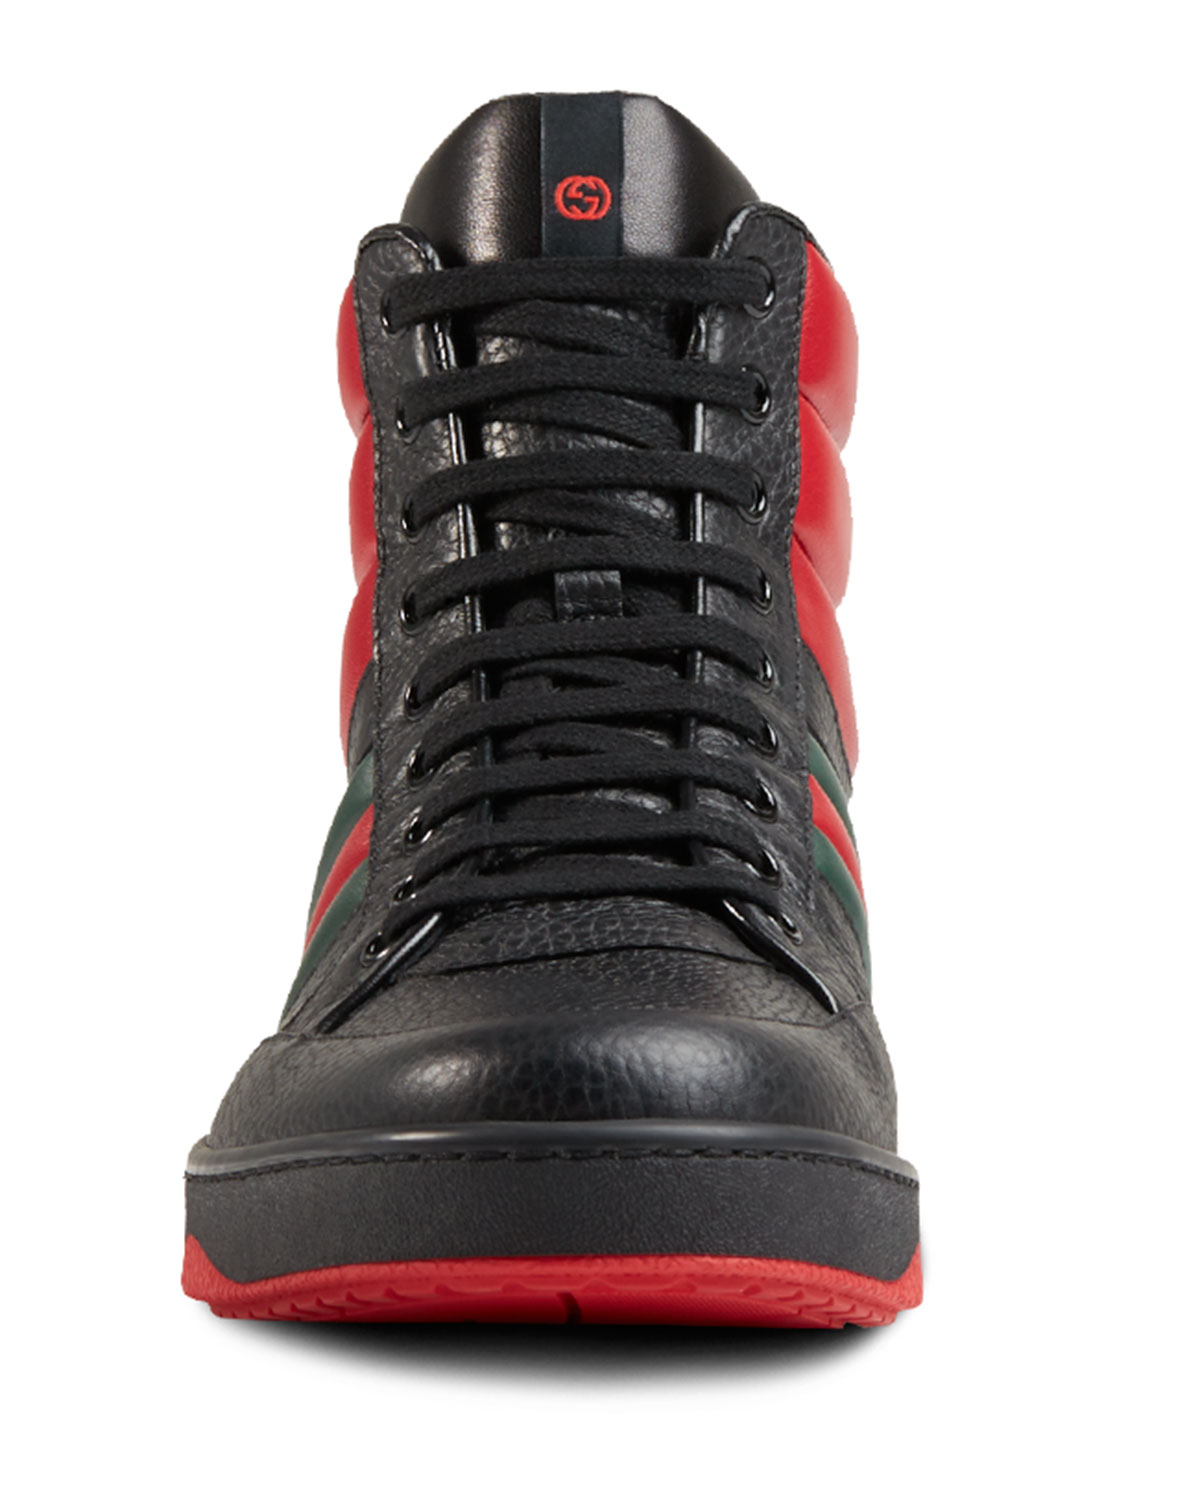 fbffc25ebfb Lyst - Gucci Contrast Padded Leather High-top Sneaker in Red for Men